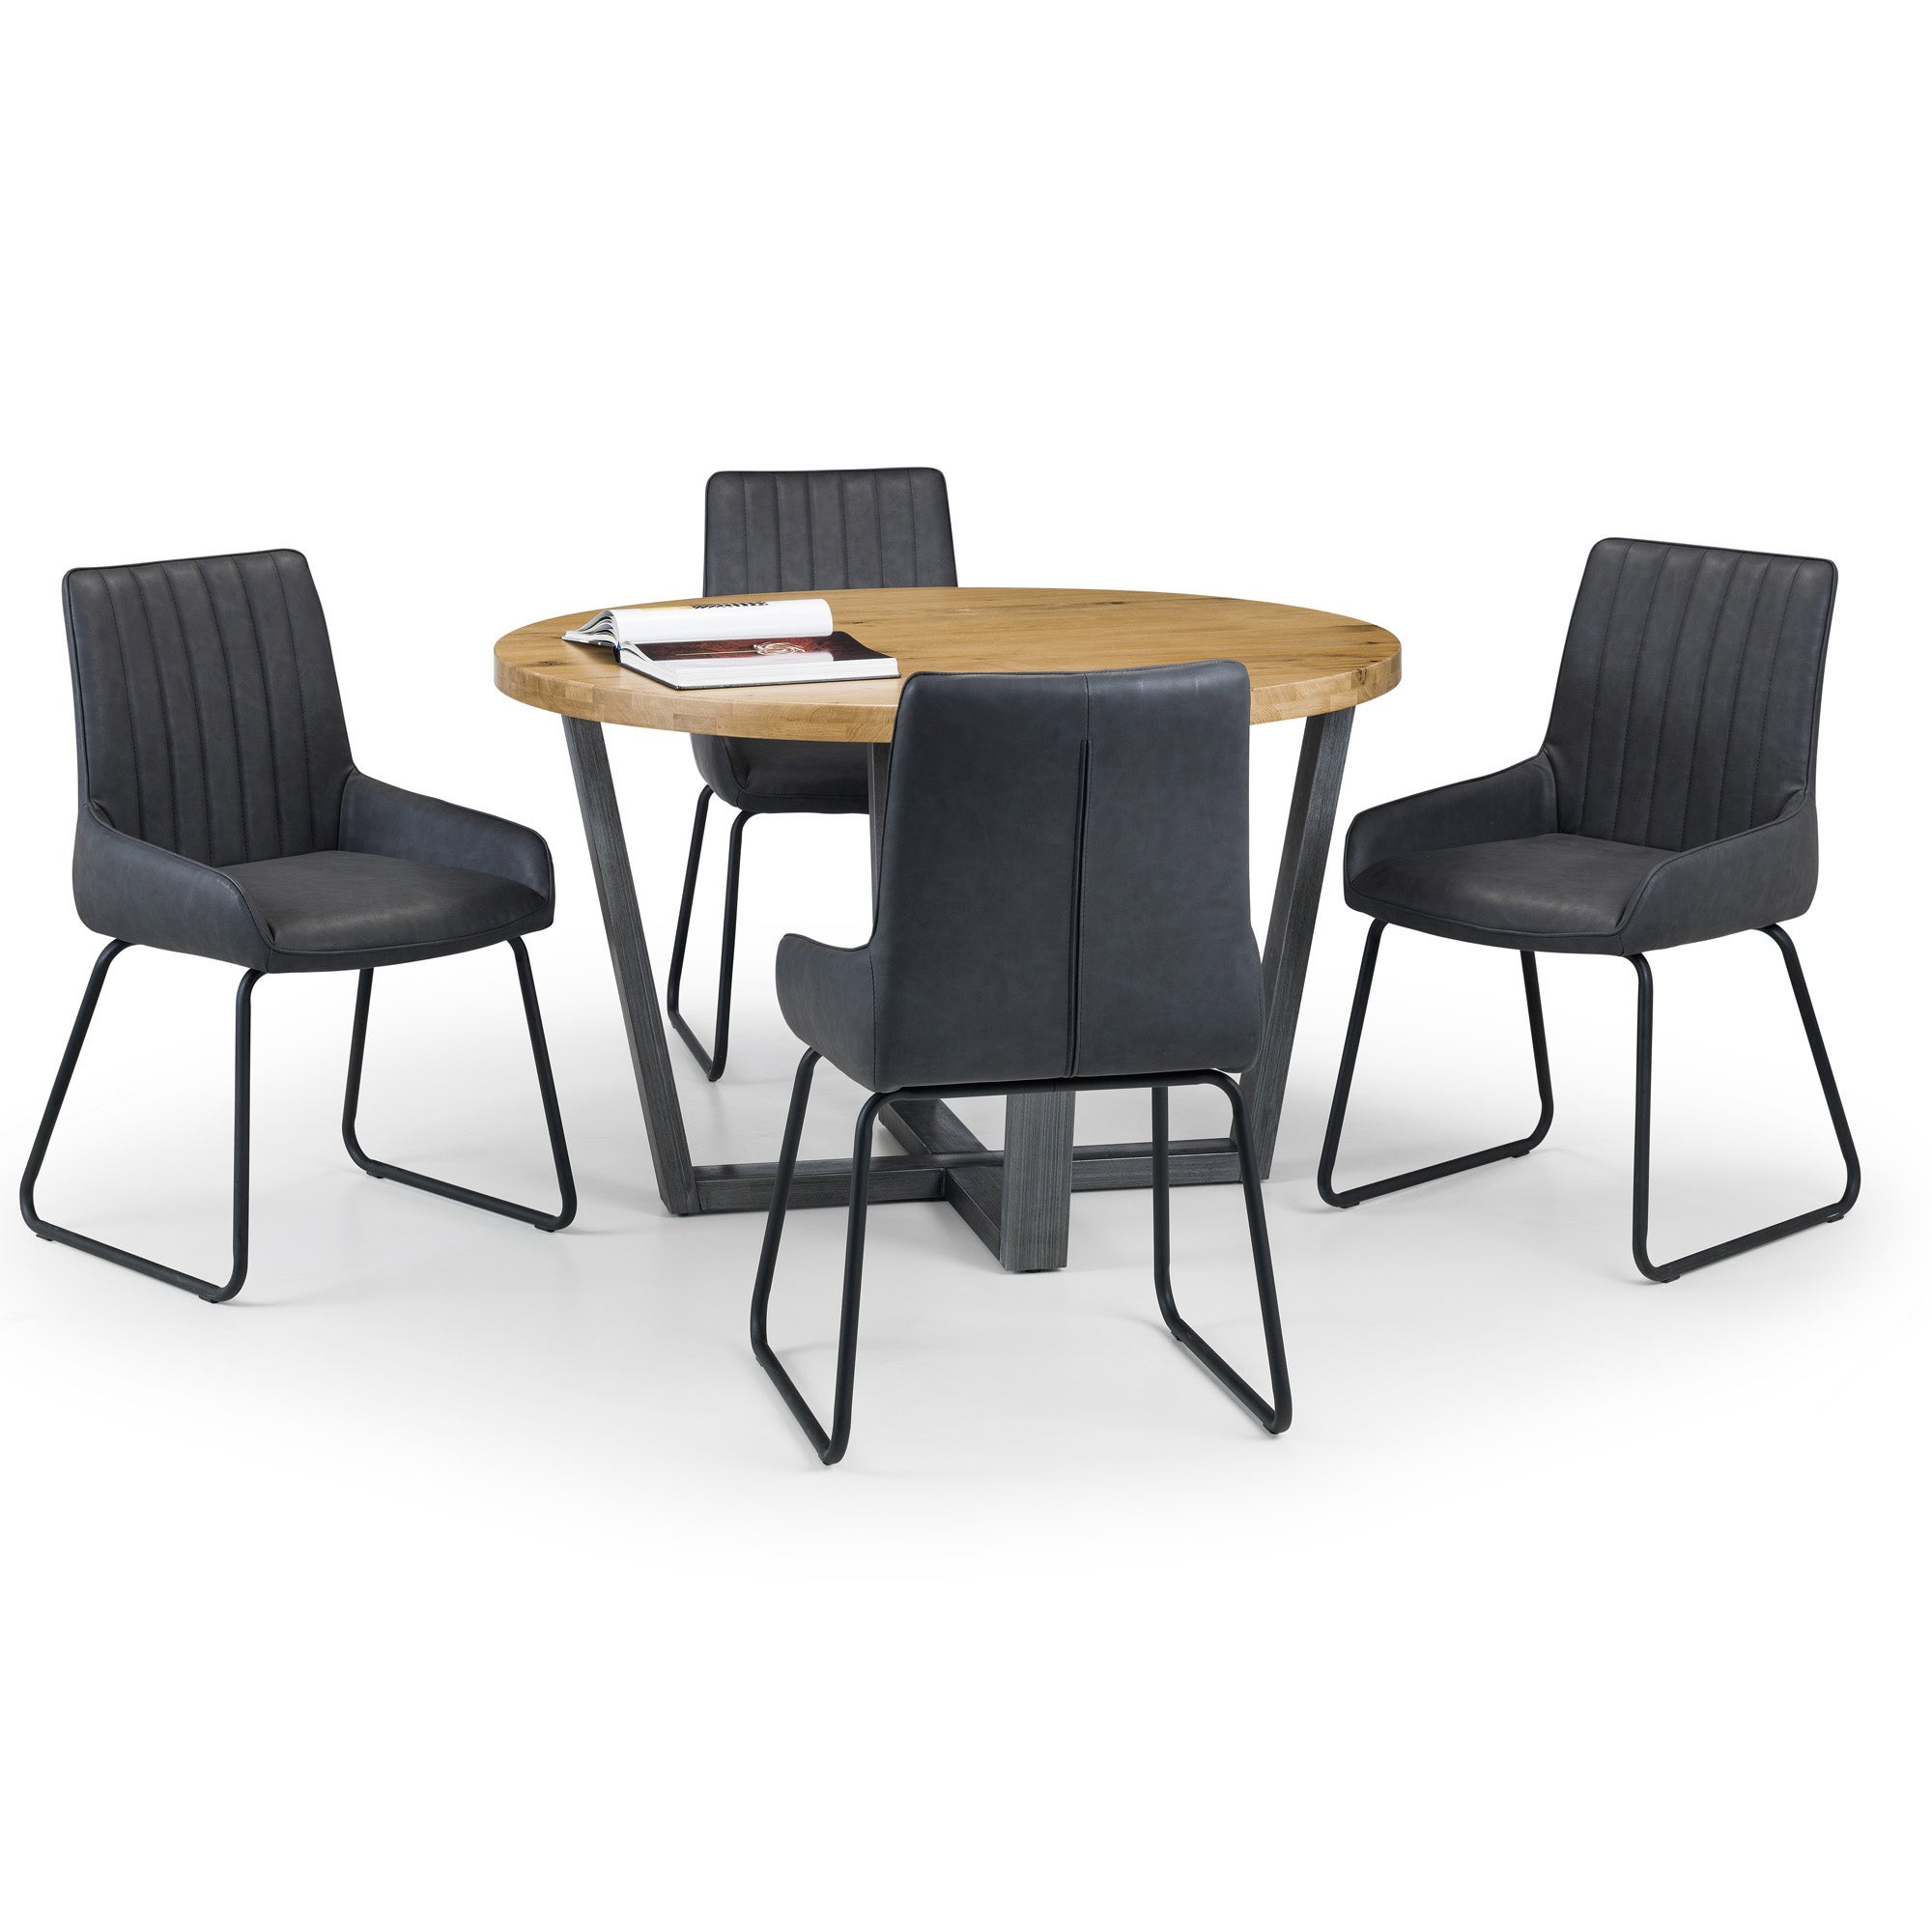 Brooklyn Round Dining Table with 4 Soho Chairs Brown and Charcoal